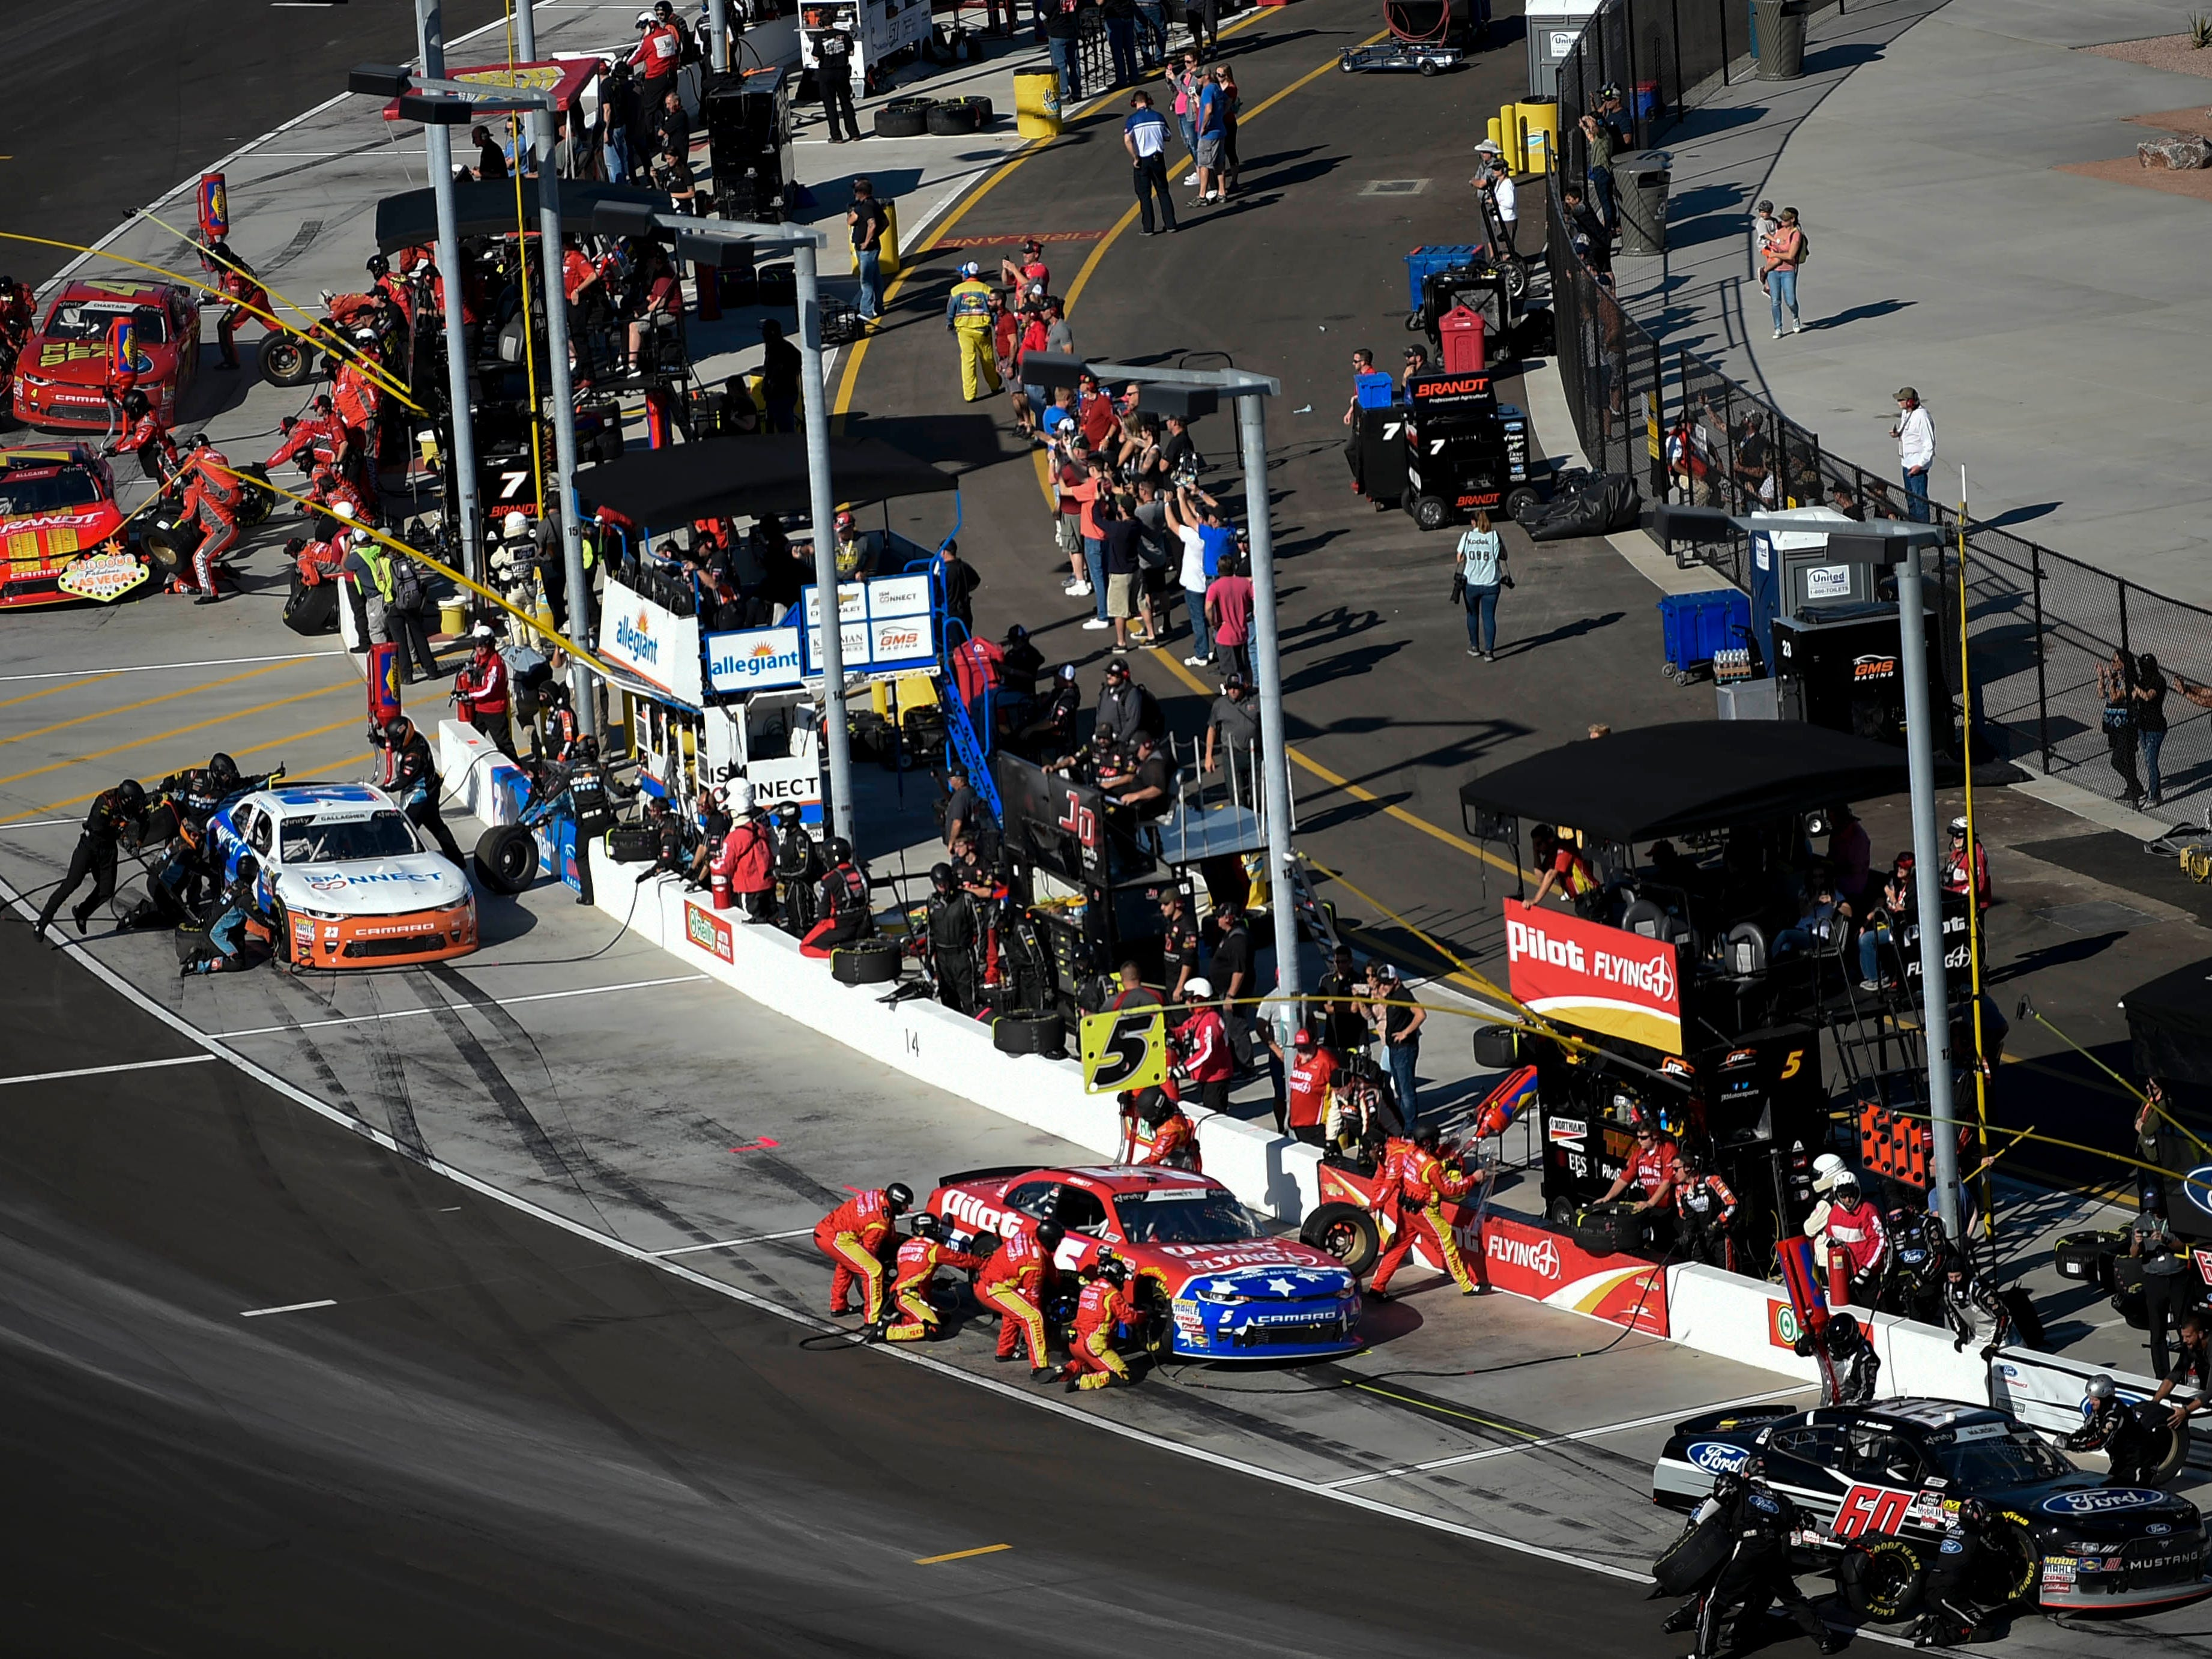 Nov 10, 2018; Avondale, AZ, USA; A general view of pit row during the NASCAR Xfinity Series Race at ISM Raceway. Mandatory Credit: Kelvin Kuo-USA TODAY Sports